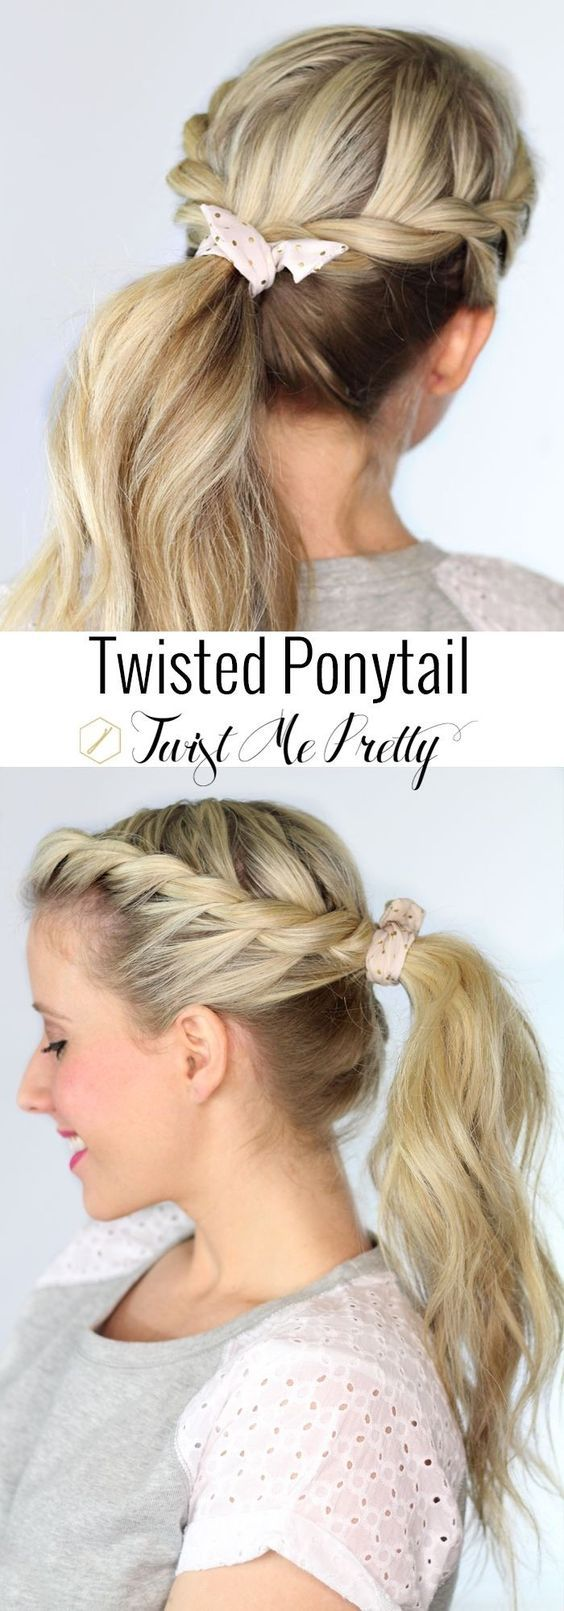 best 25+ school hairstyles ideas on pinterest | simple school